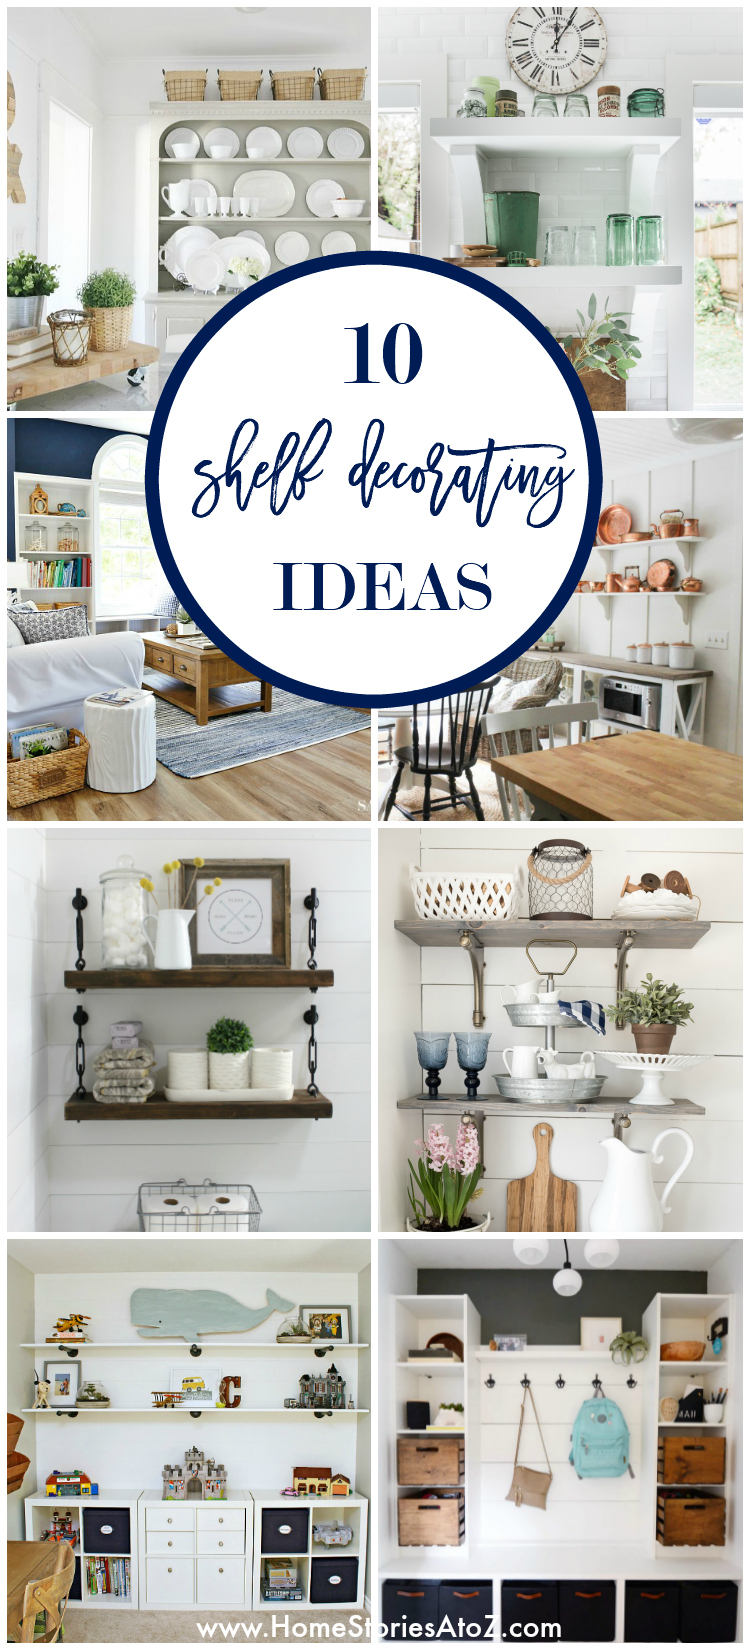 Decorating Your Bookcases Cubbies And Shelves Is A Great Way To Add Personality Any Room Should Be Both Stylish Functional